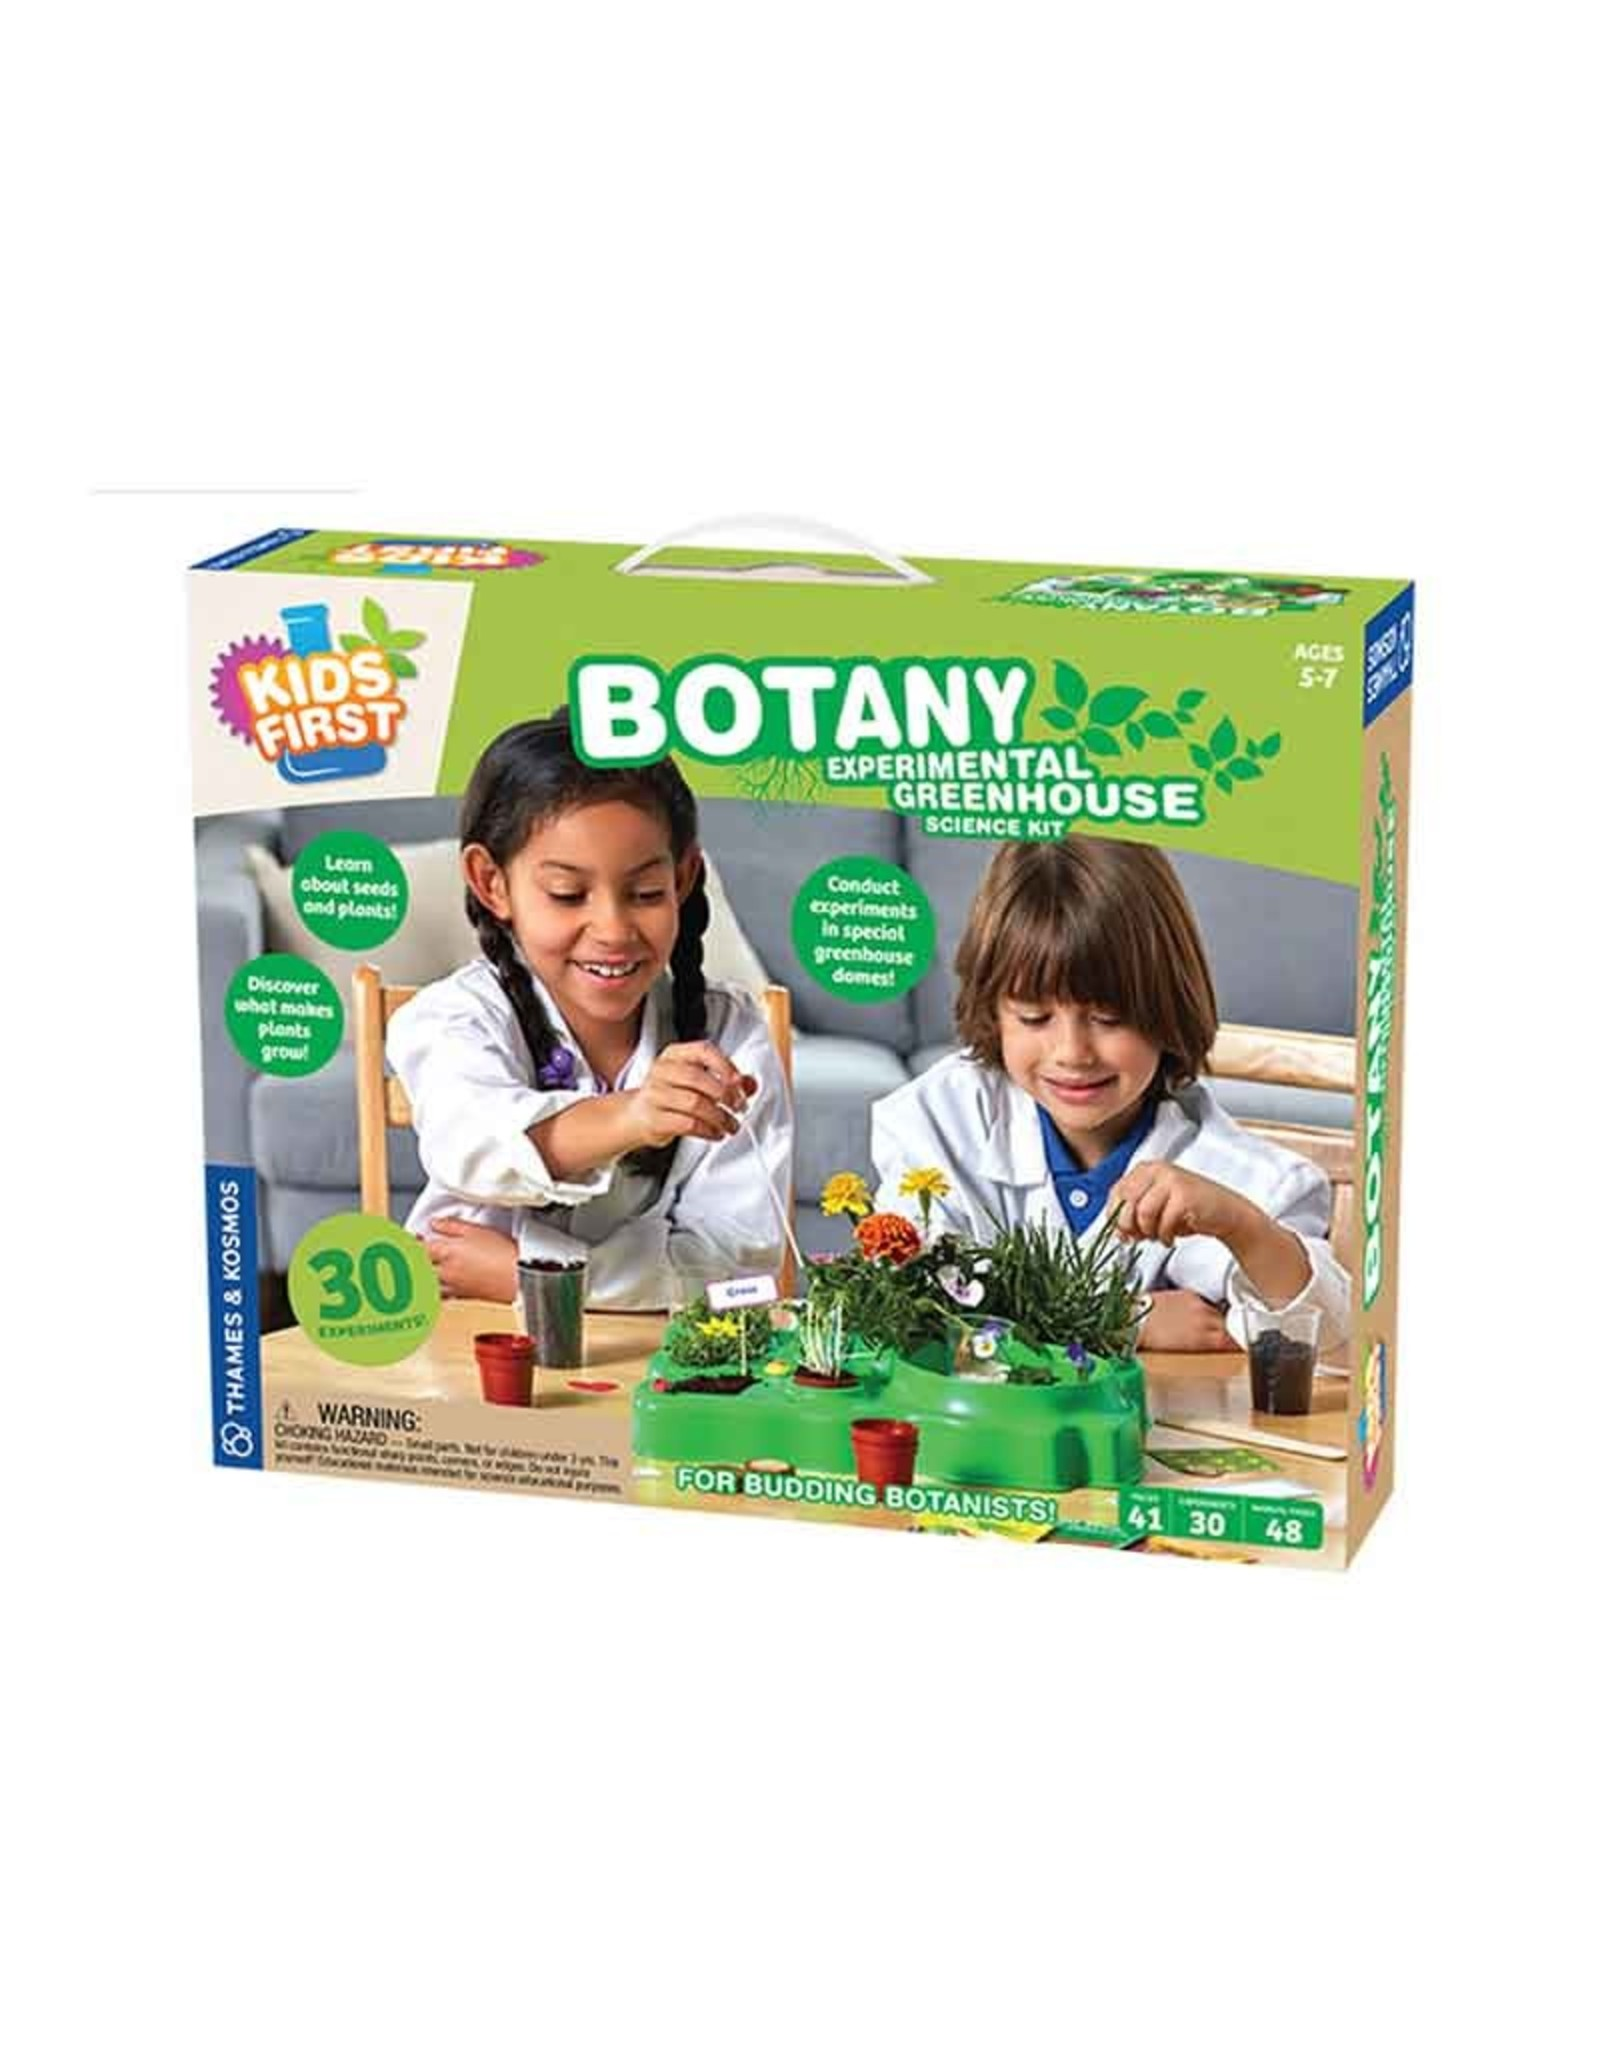 Botany - experimental greenhouse - Kids First